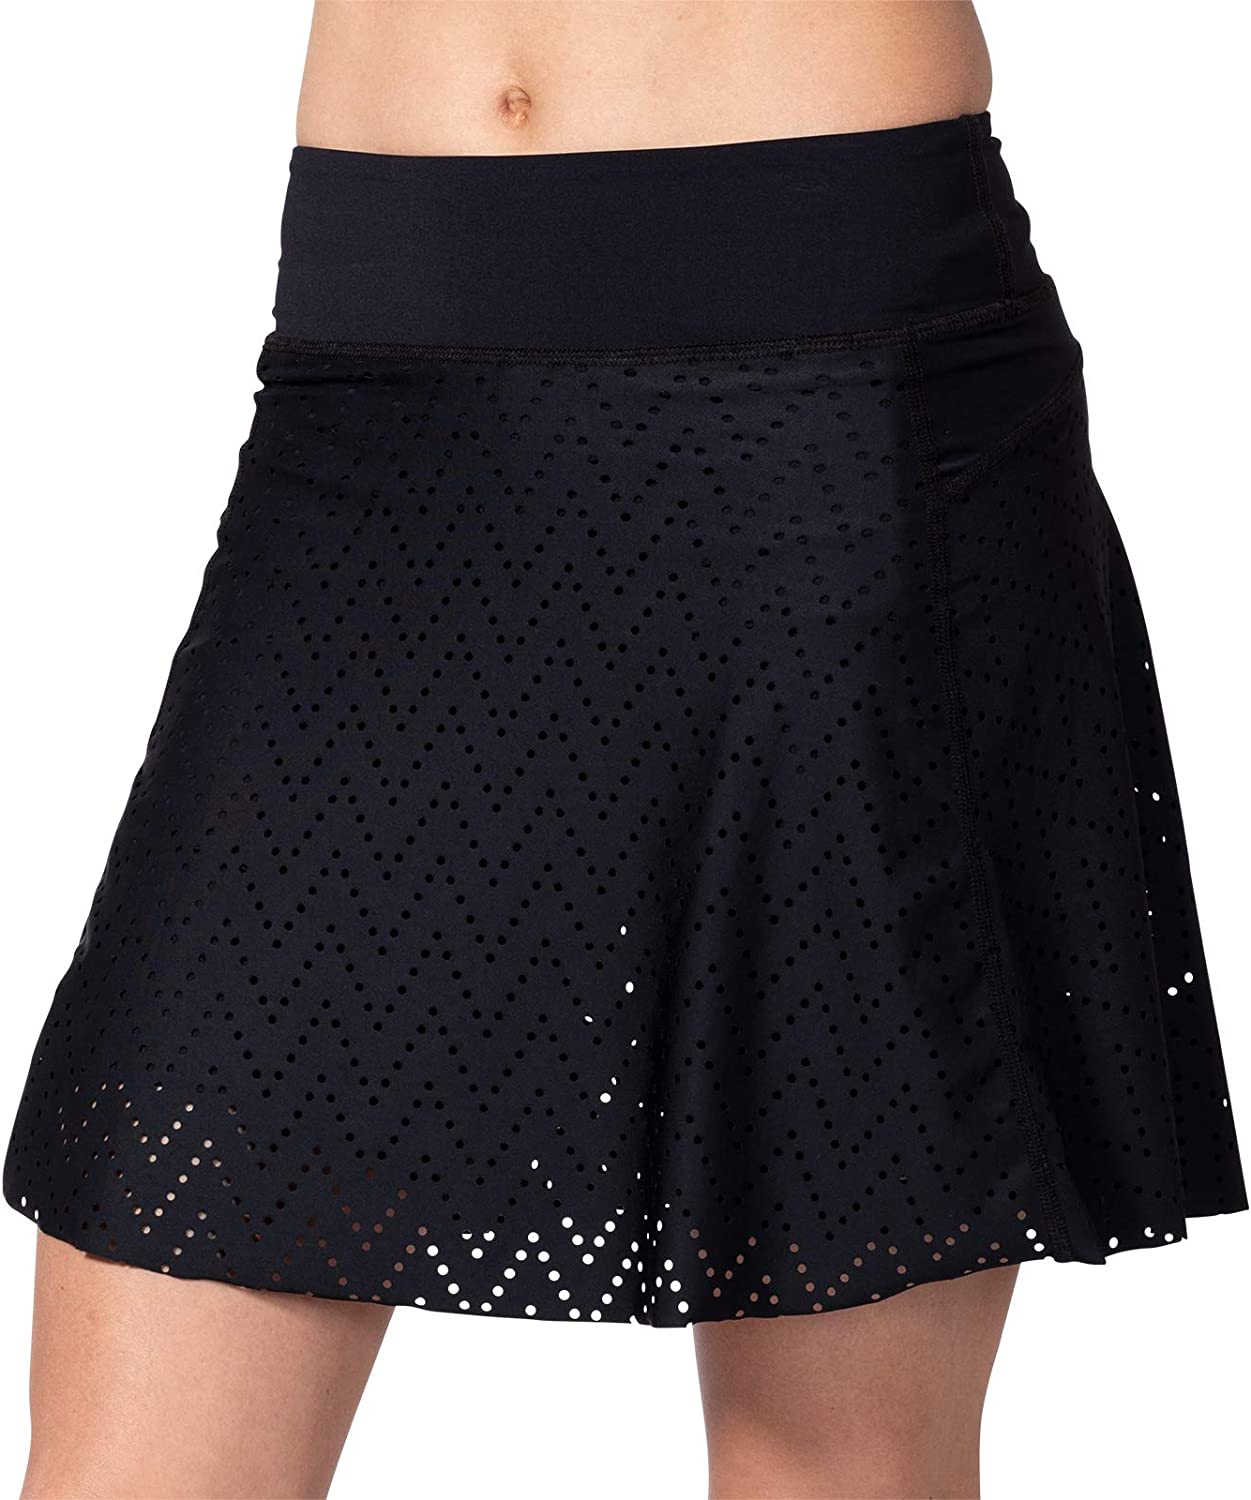 Terry Rebel New Perforated Skort